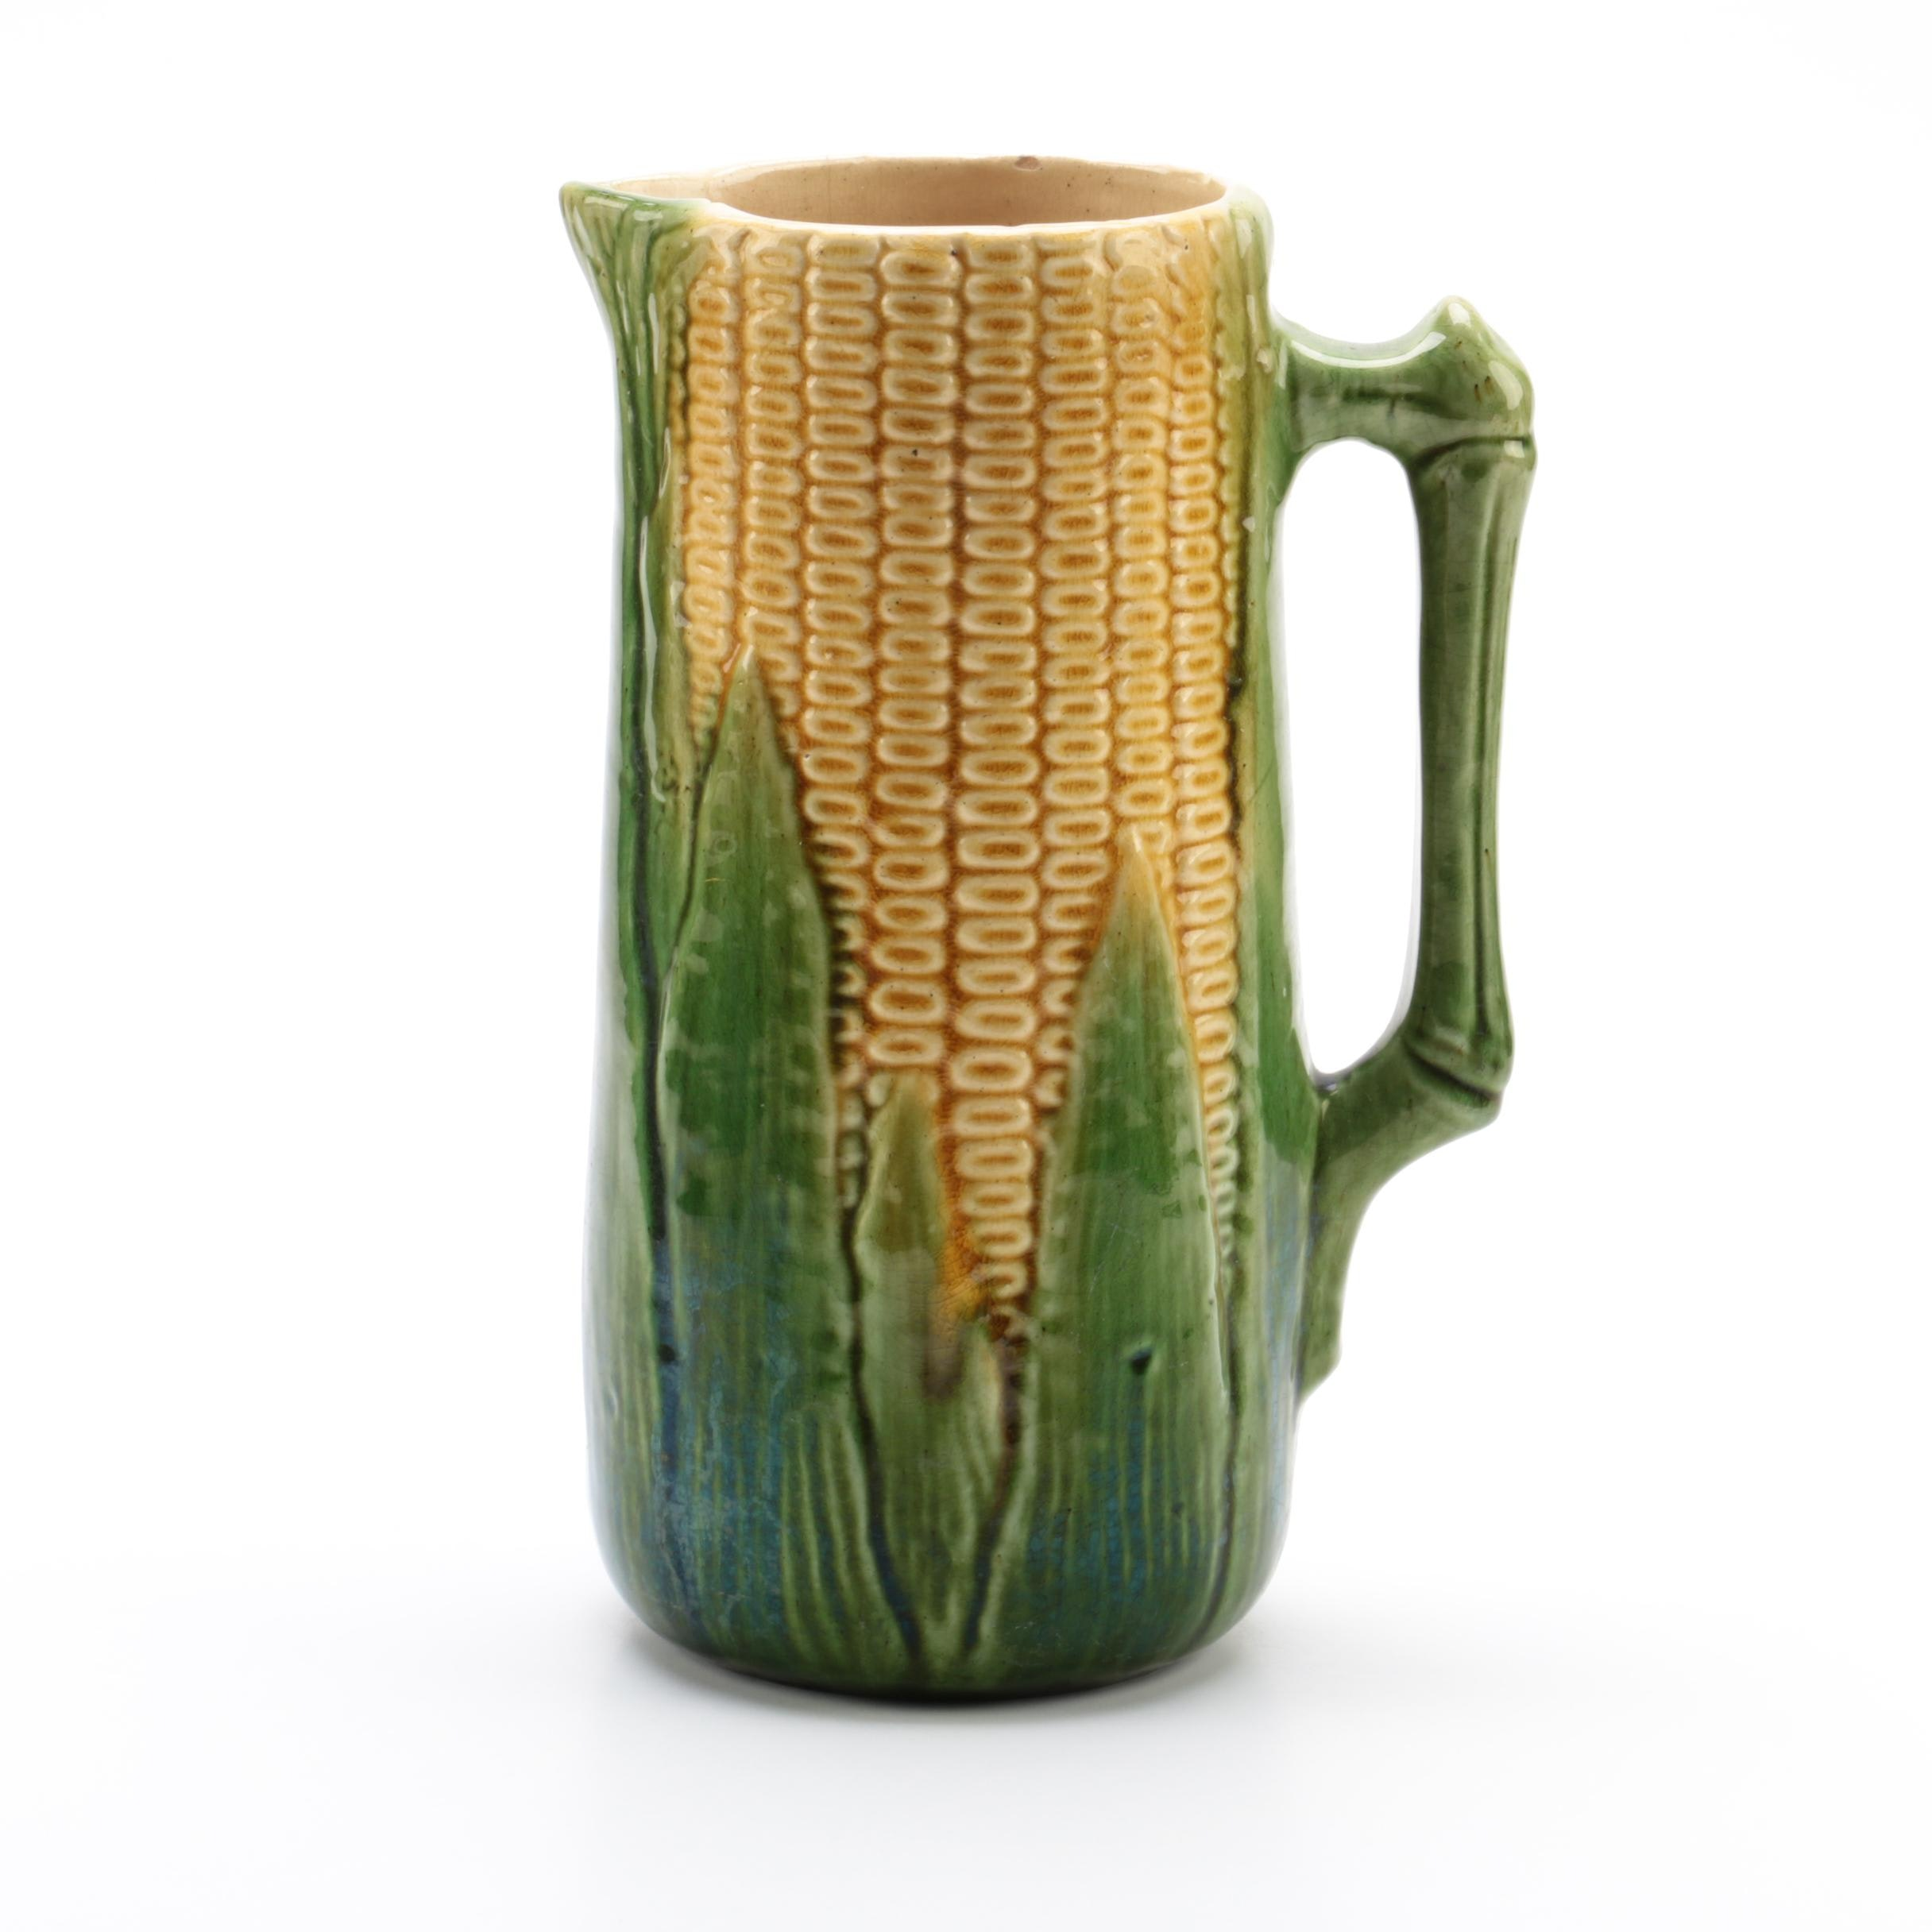 Majolica Ceramic Corn Cob Pitcher